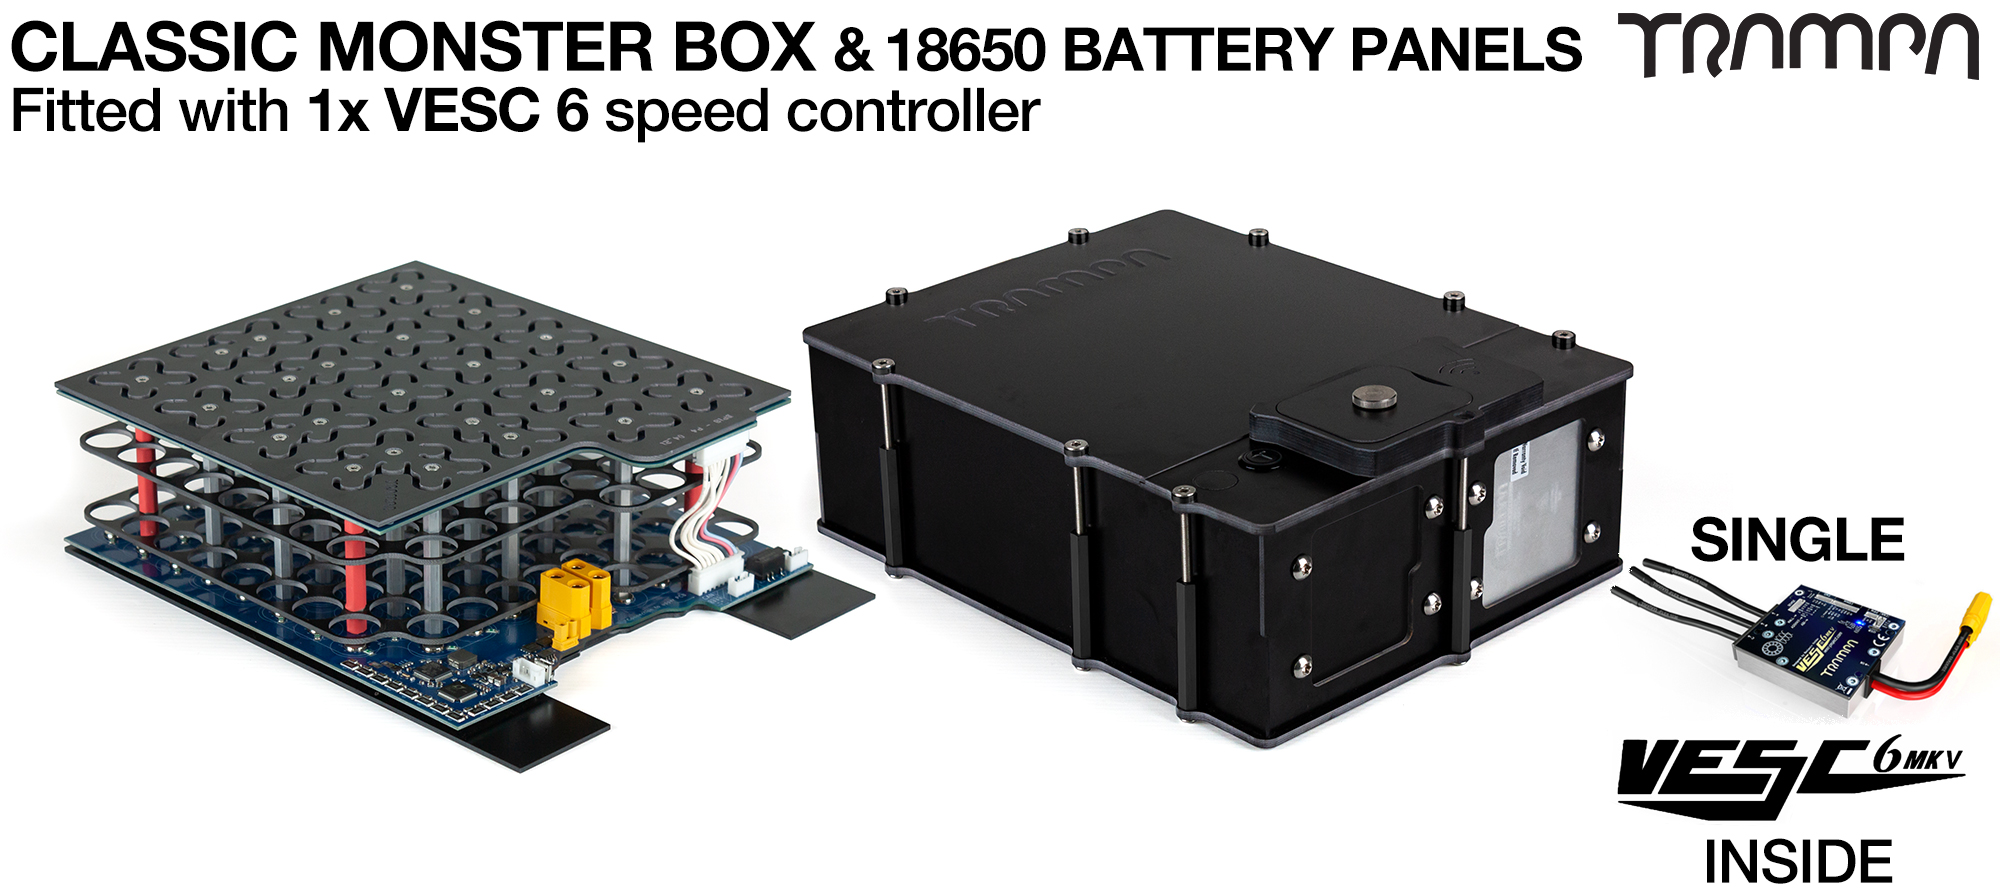 Classic MONSTER Box MkIV - with 18650 PCB Pack & 1x VESC 6 NRF fitted PCB based Battery Pack has Integrated Battery Management System (BMS) - NO Cells